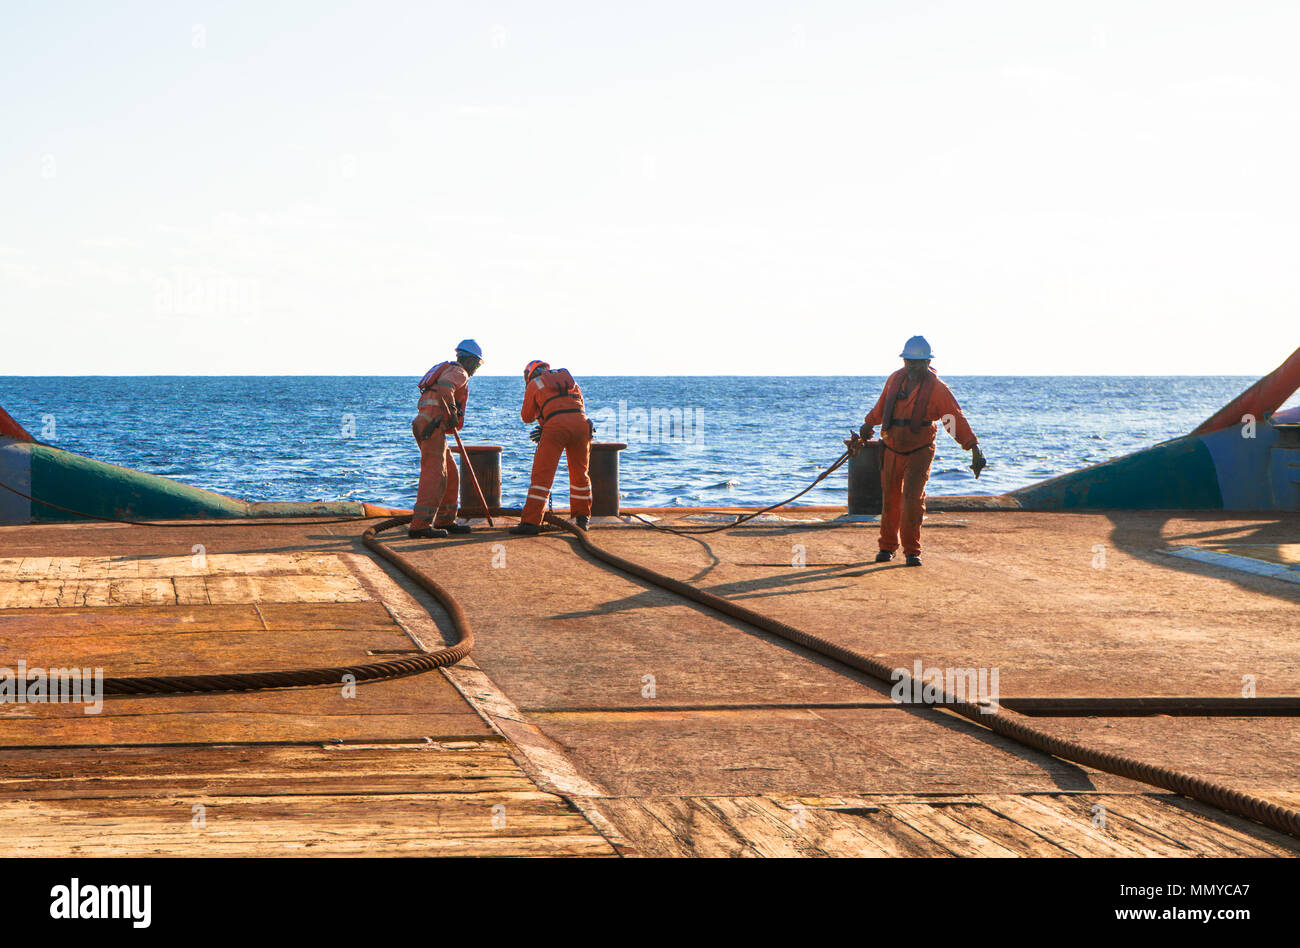 Anchor-handling Tug Supply AHTS vessel crew preparing vessel for static tow tanker lifting. Ocean tug job. 3 AB and Bosun on deck. They pull towing wi Stock Photo